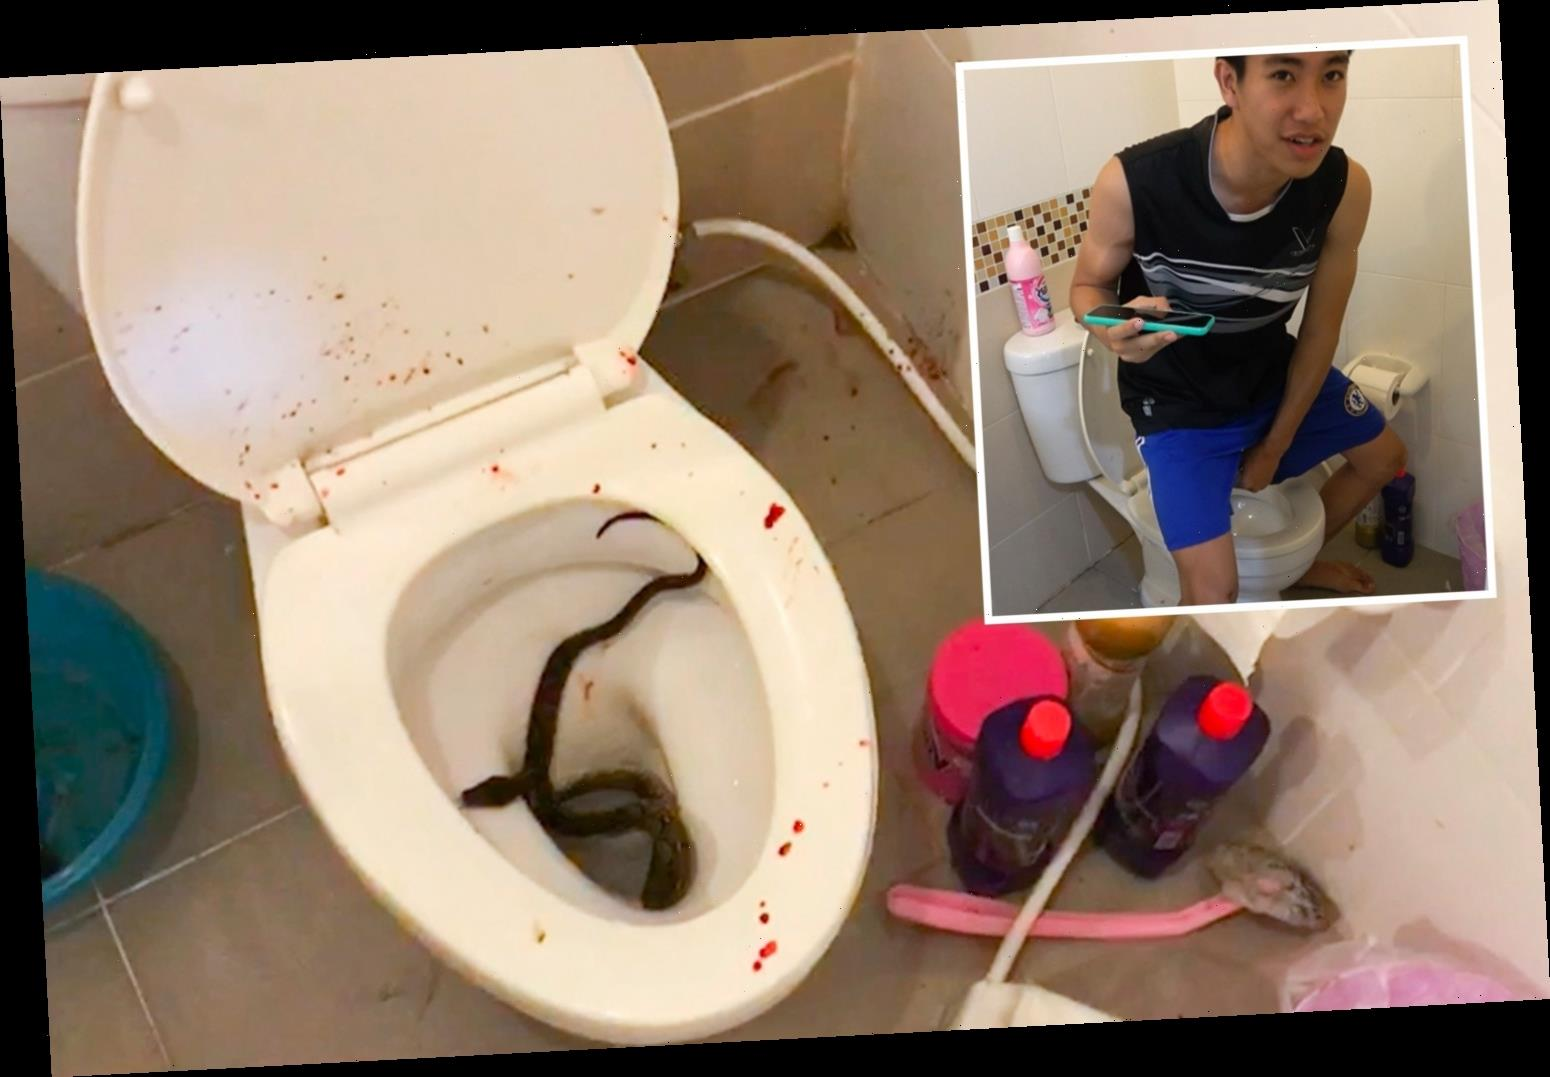 Teen rushed to hospital after 4ft python bit his PENIS as he sat on the toilet leaving 'blood spurting everywhere'